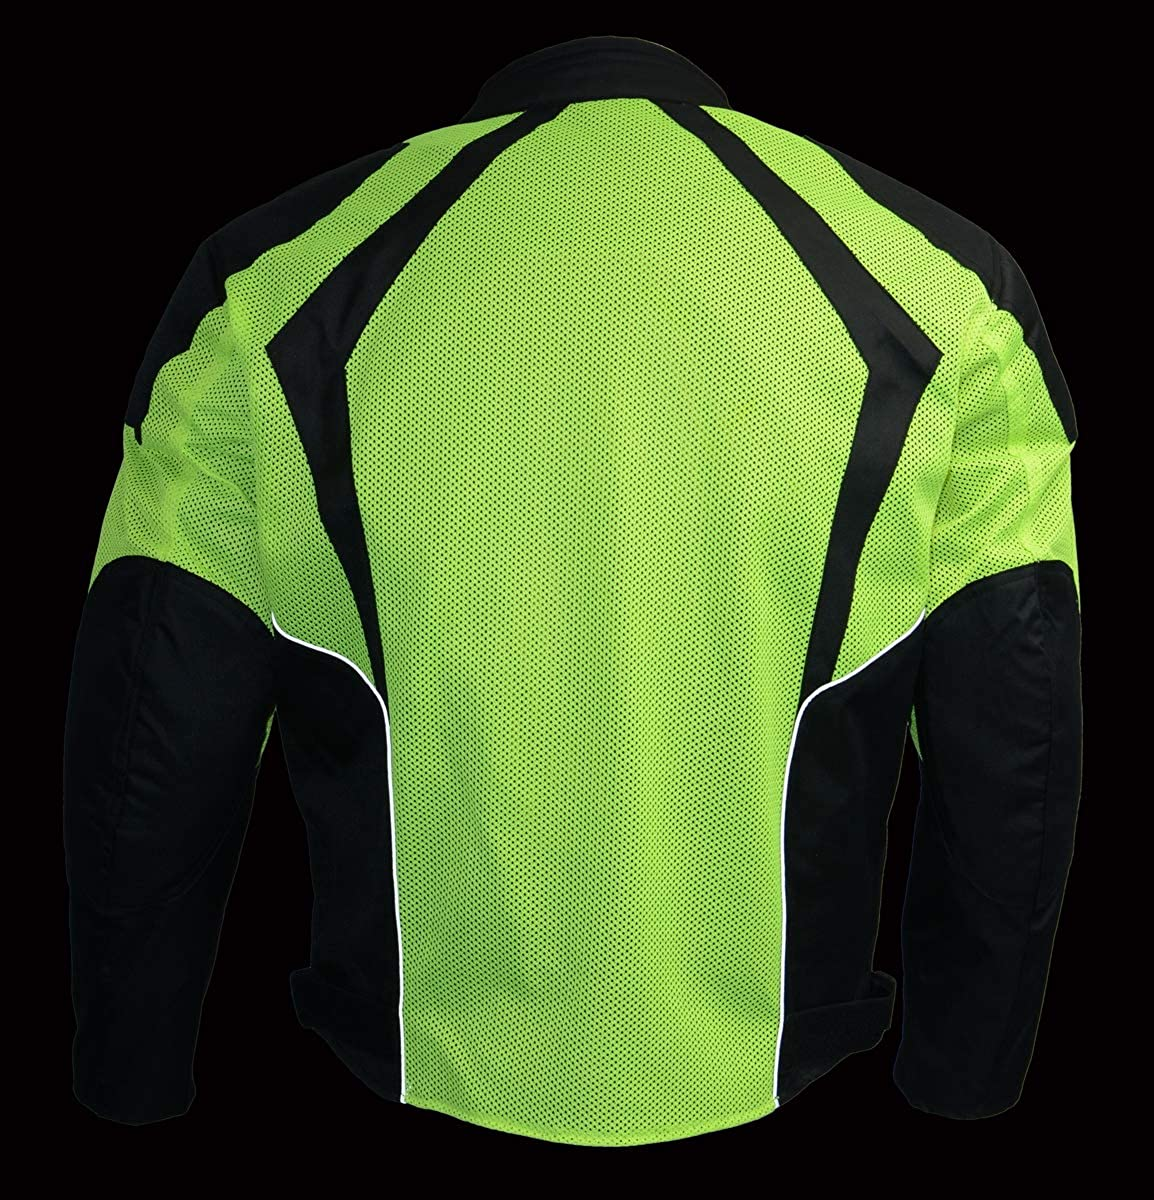 Milwaukee Leather MPM1793 Mens Armored High Vis Mesh Racer Jacket with Reflective Piping